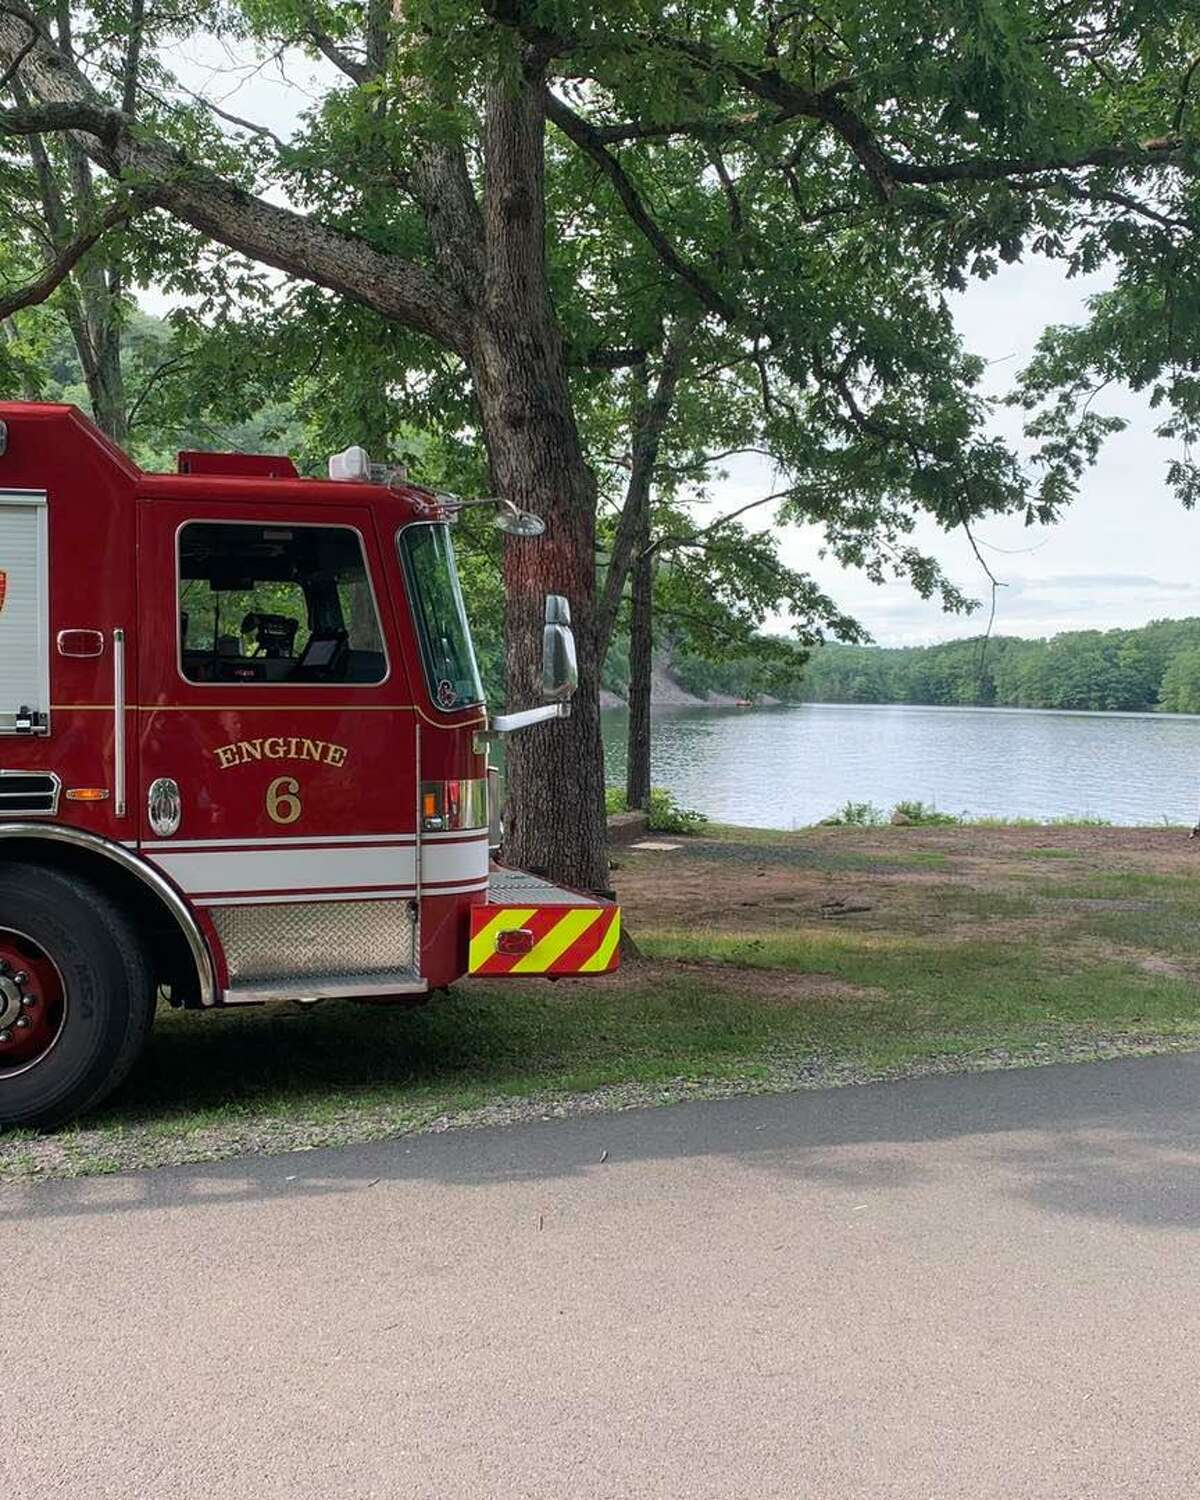 Crews at the reservoir in West Hartford, Conn., helping a lost hiker on Thursday, July 22, 2021.